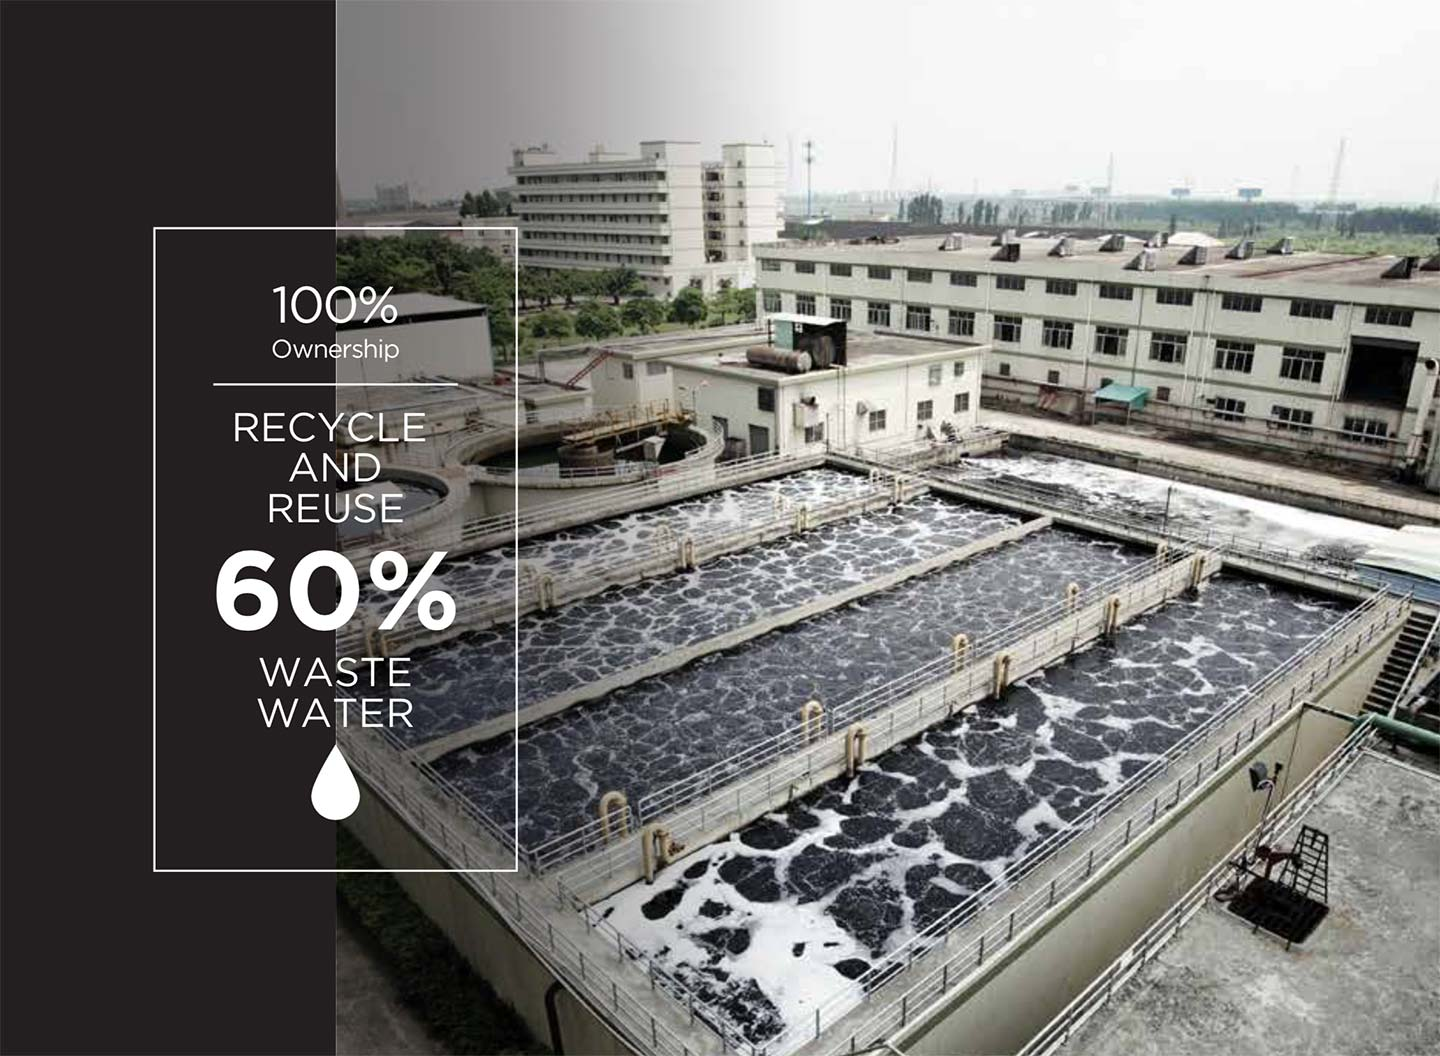 recycled waste water for sustainable future from ethical cashmere production